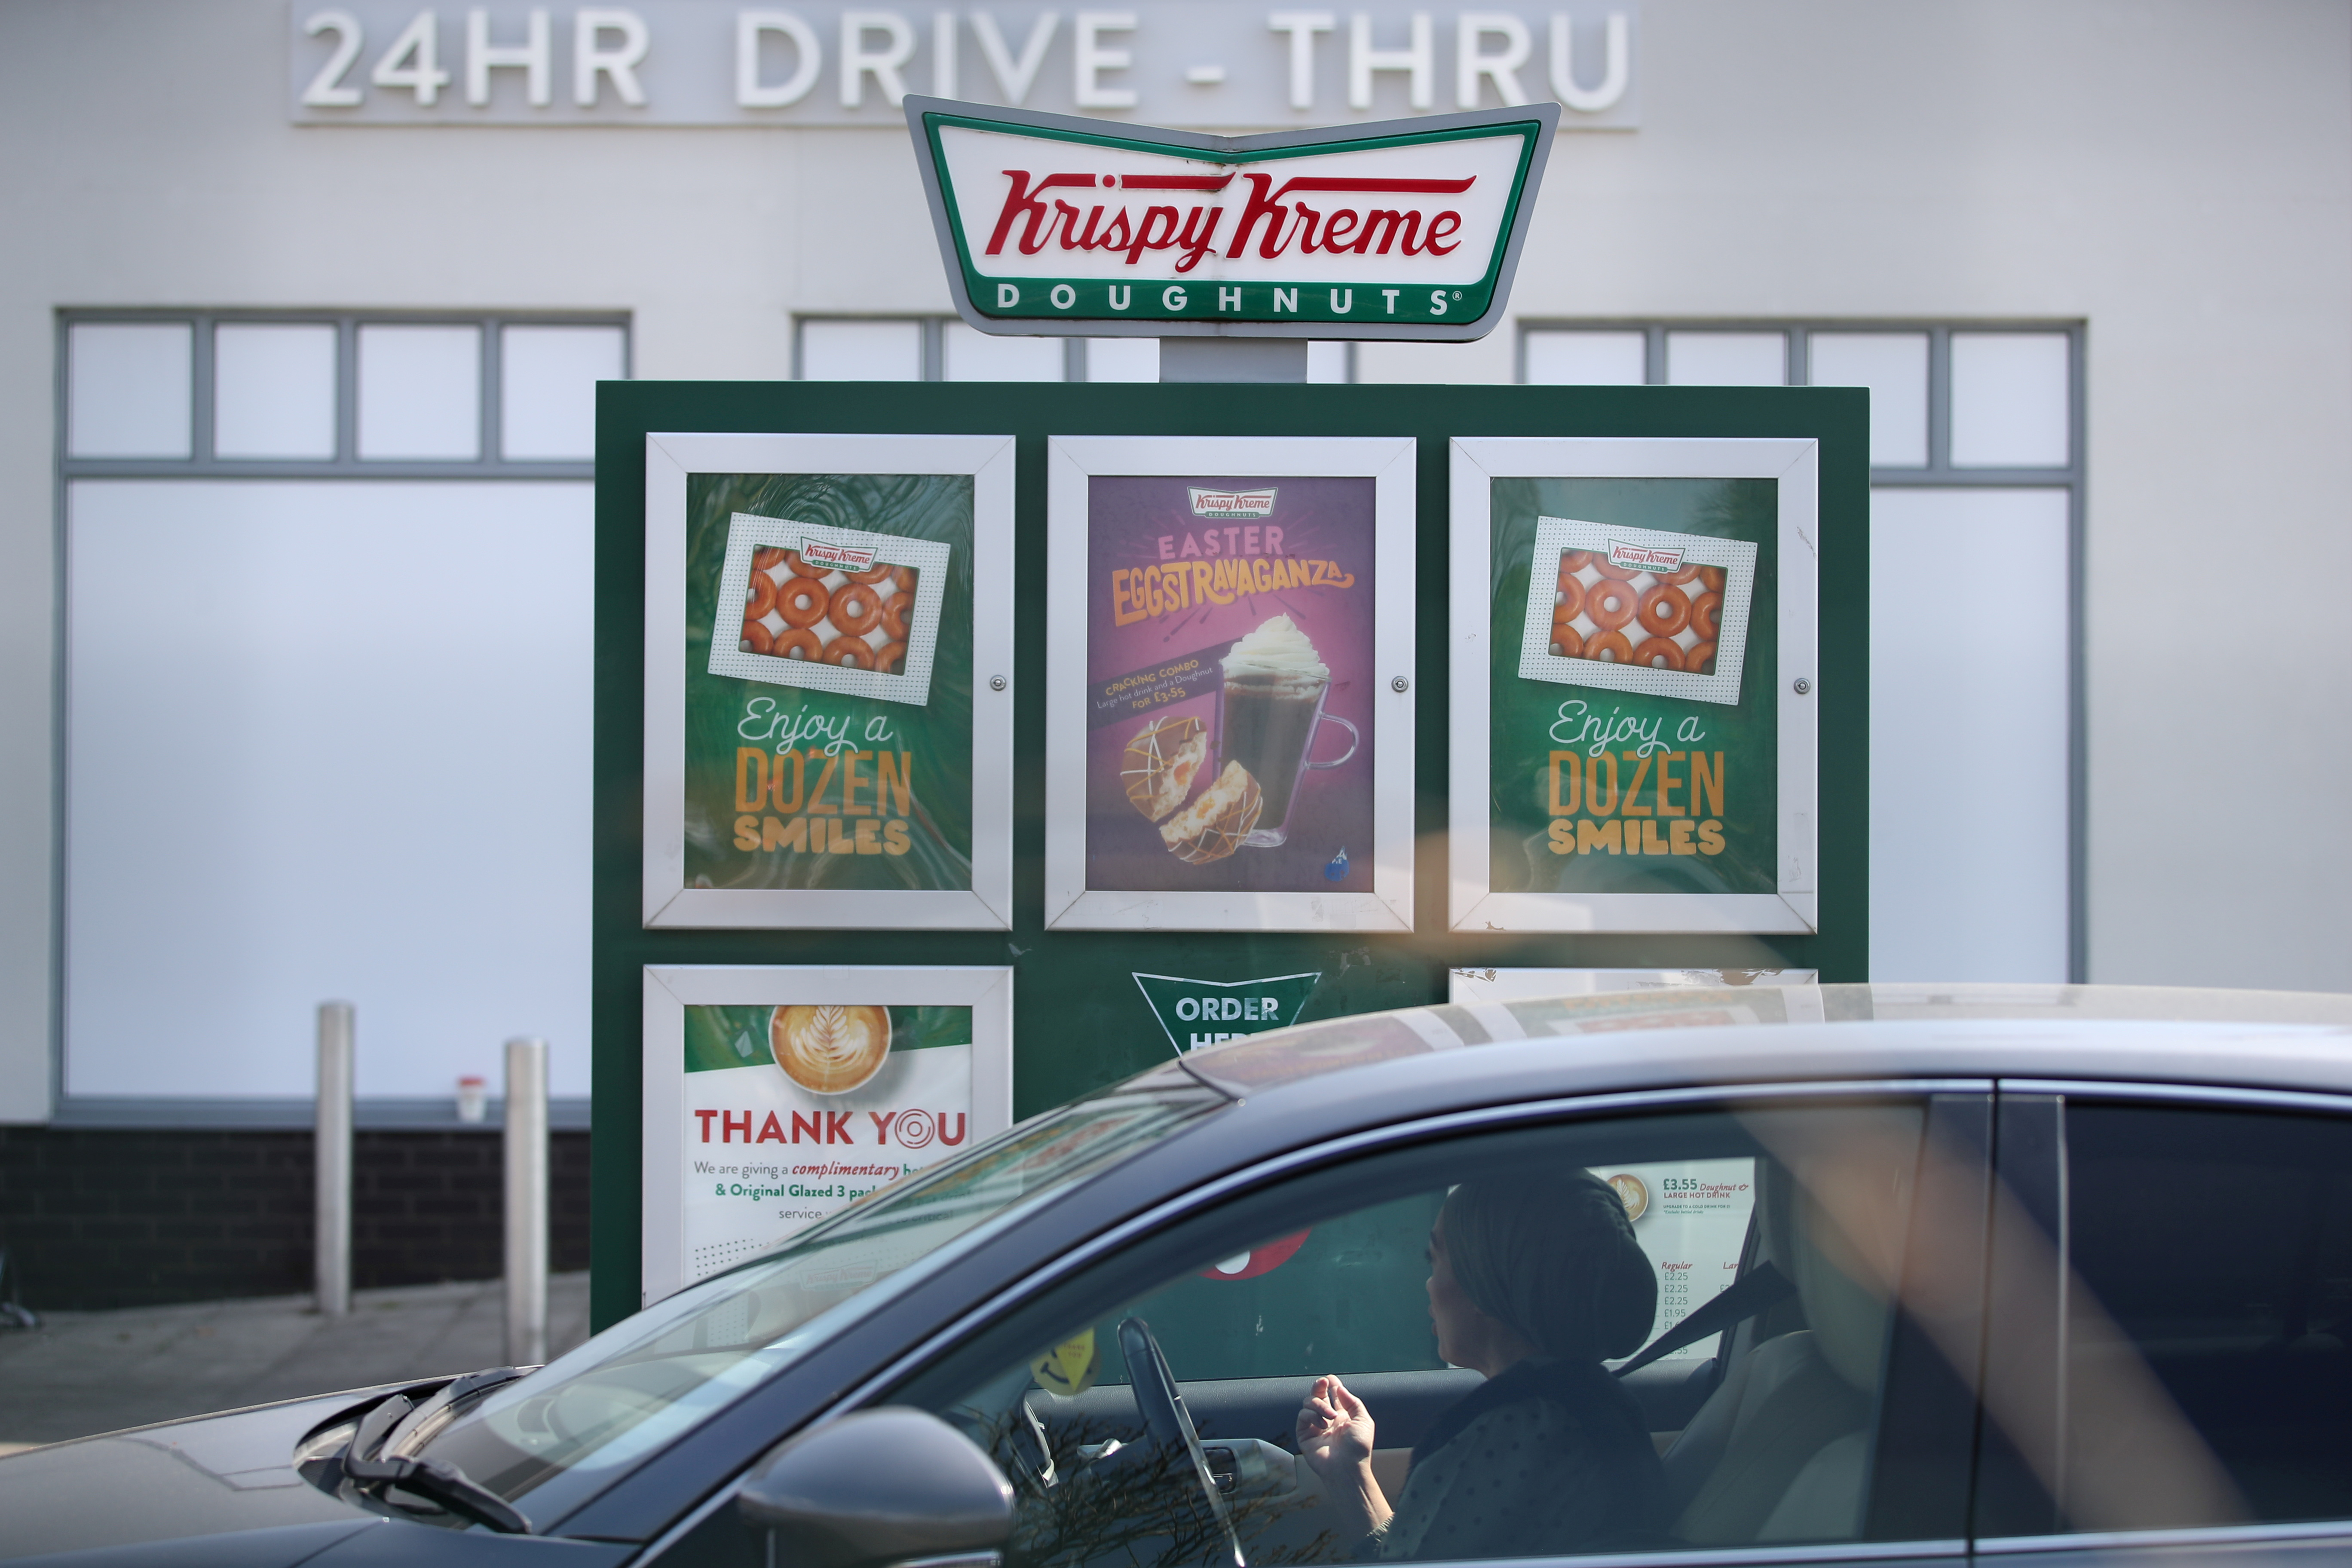 A woman in a car looks at a menu at a drive-thru Krispy Kreme at Trafford Park after opening their store to serve NHS staff and essential workers free doughnuts as the spread of the coronavirus disease (COVID-19) continues, Manchester, Britain, April 17, 2020. REUTERS/Molly Darlington/File Photo